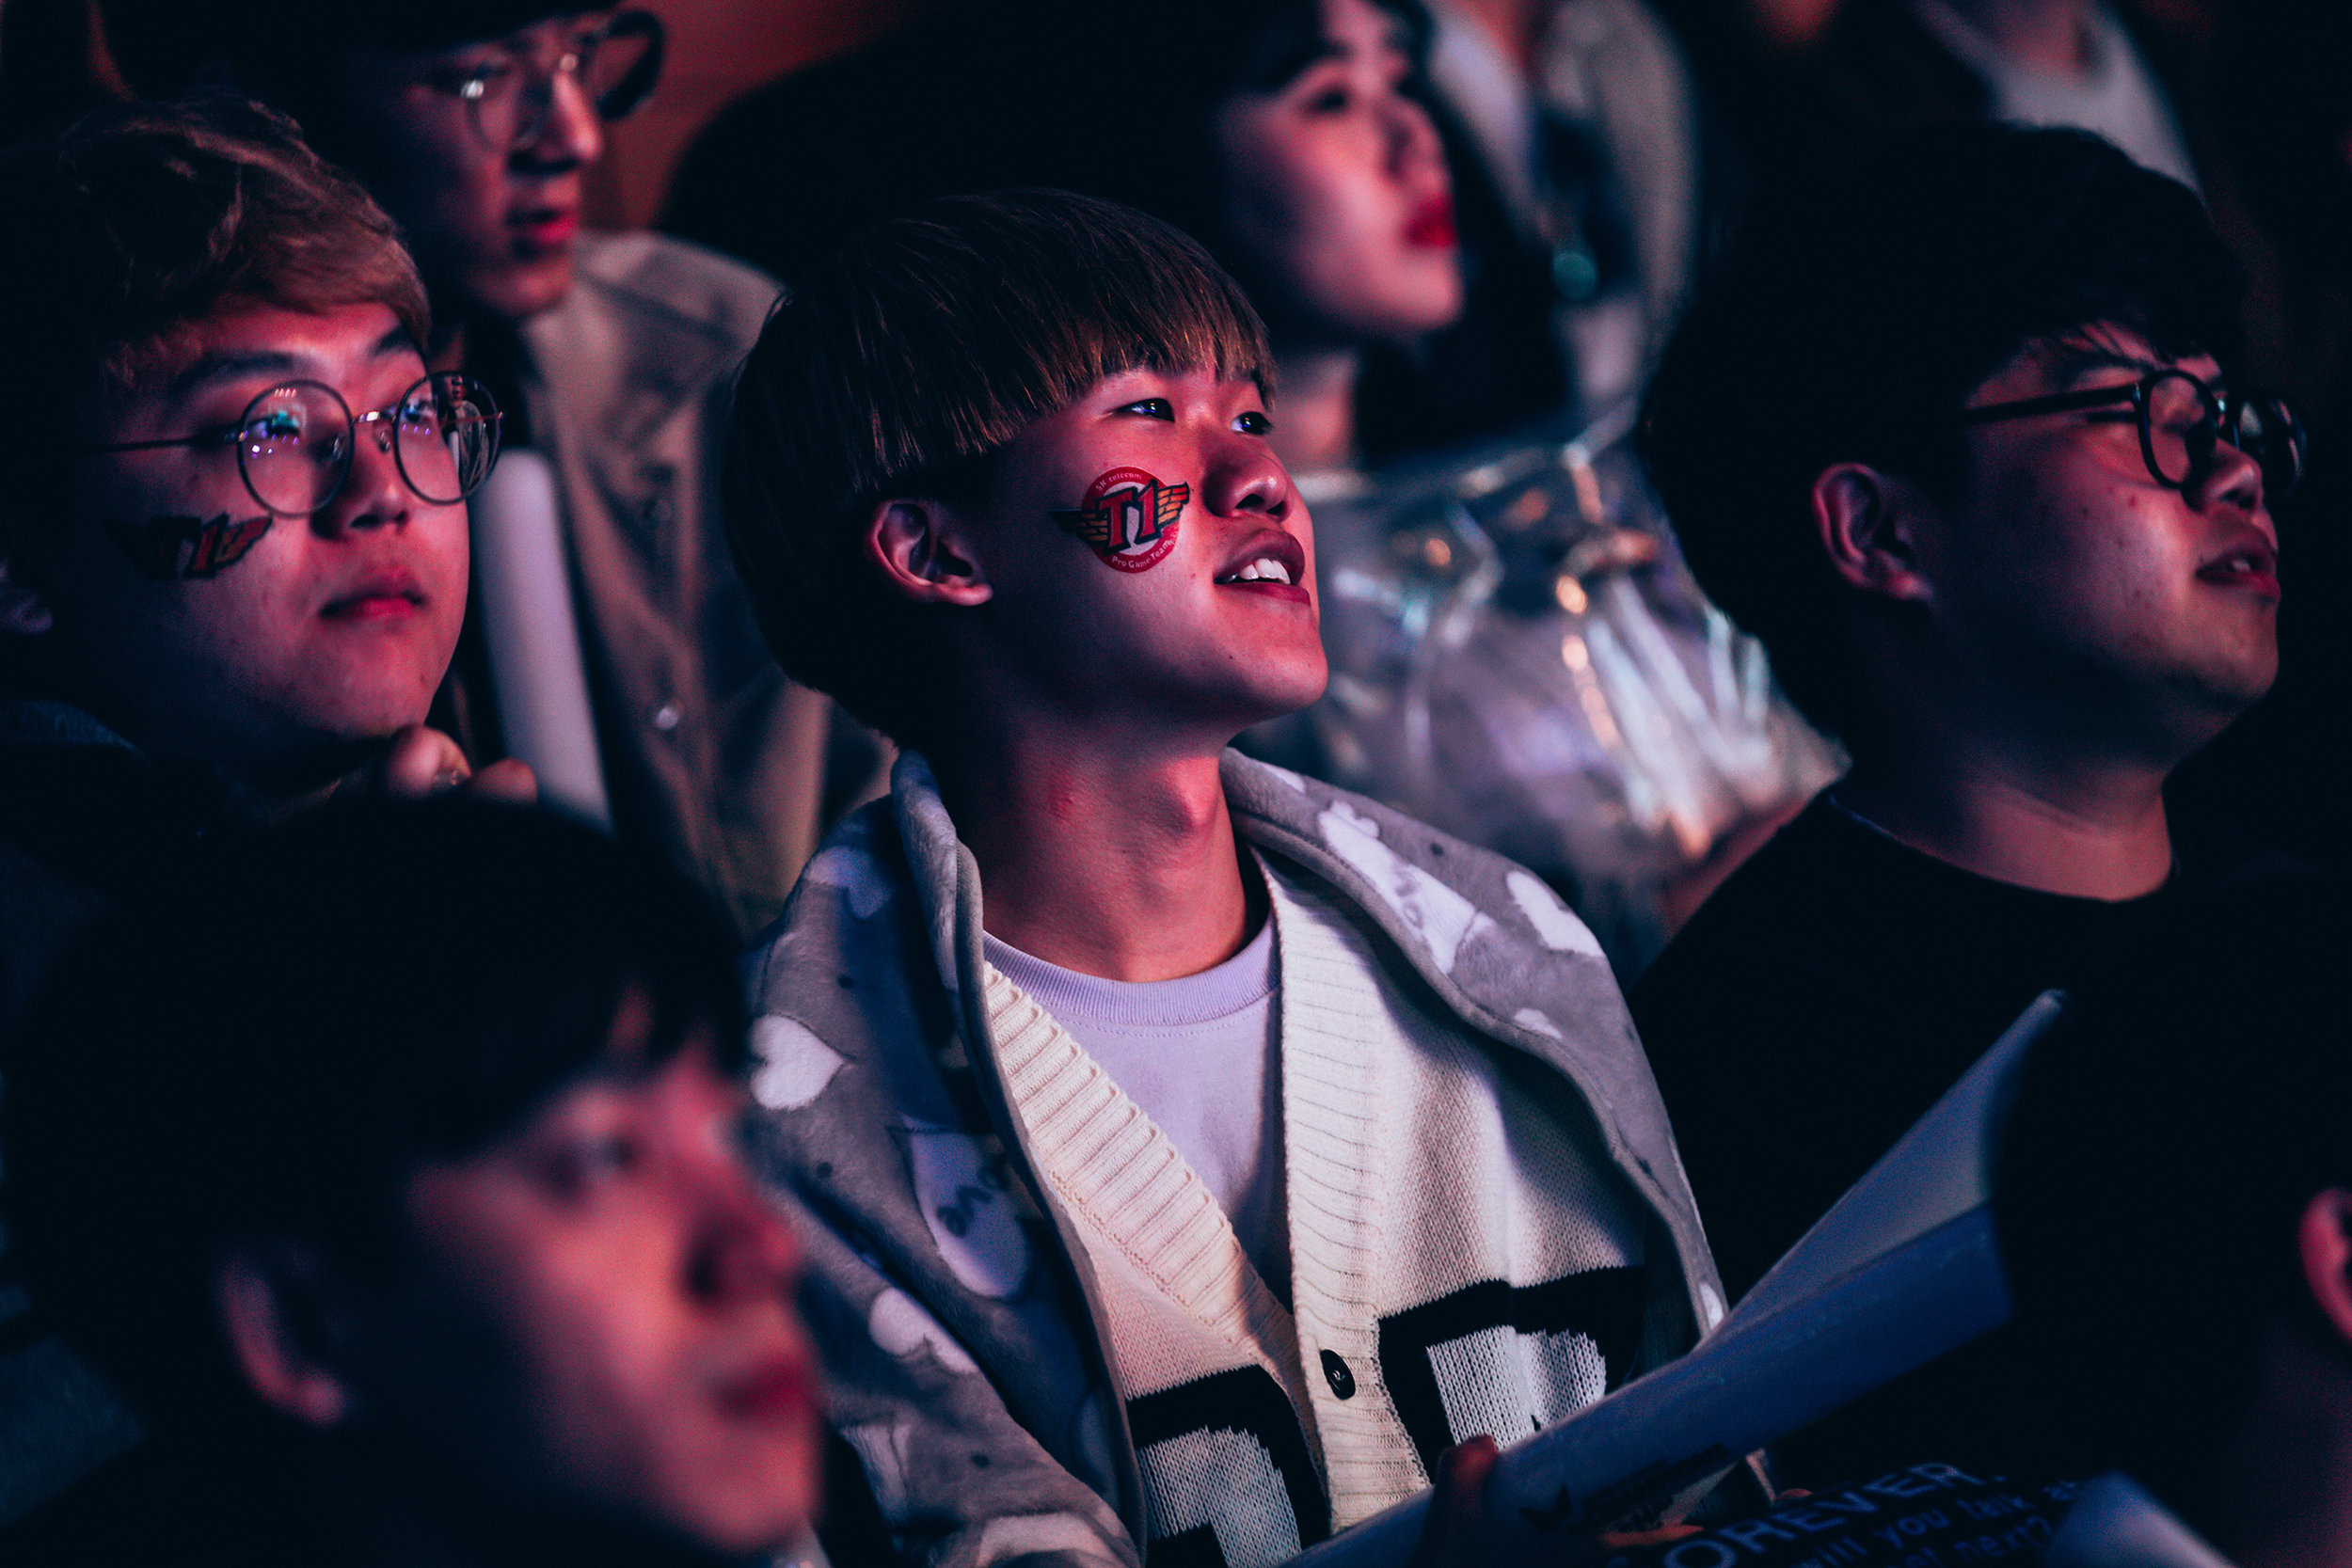 APRIL 13: Fan cheering on SK Telecom T1 as they win 3-0 over Griffin at LCK Spring Finals at Jamsil Sports Center on April 13, 2019 in Seoul, Korea. Photo by Timo Verdeil/ESPAT Media